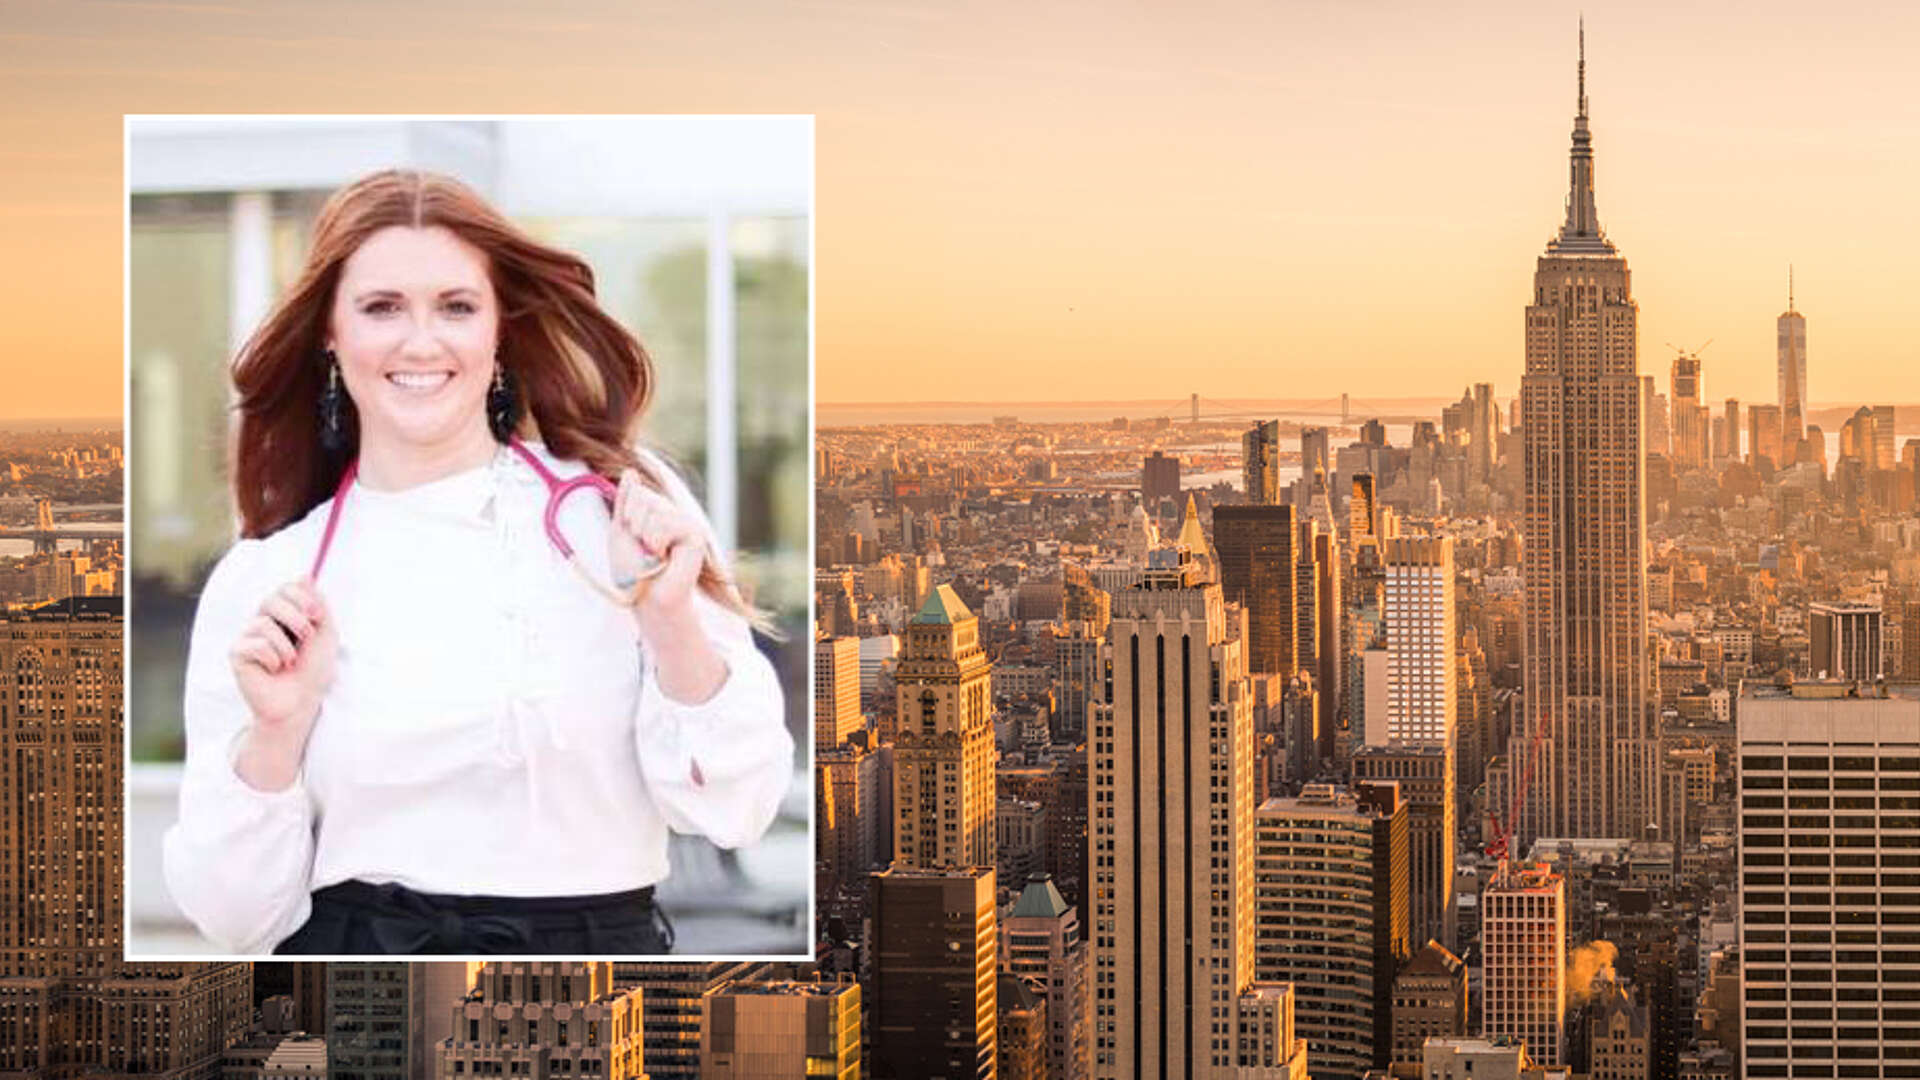 inset photo of Nici Rogers with stethoscope, background image of New York skyline